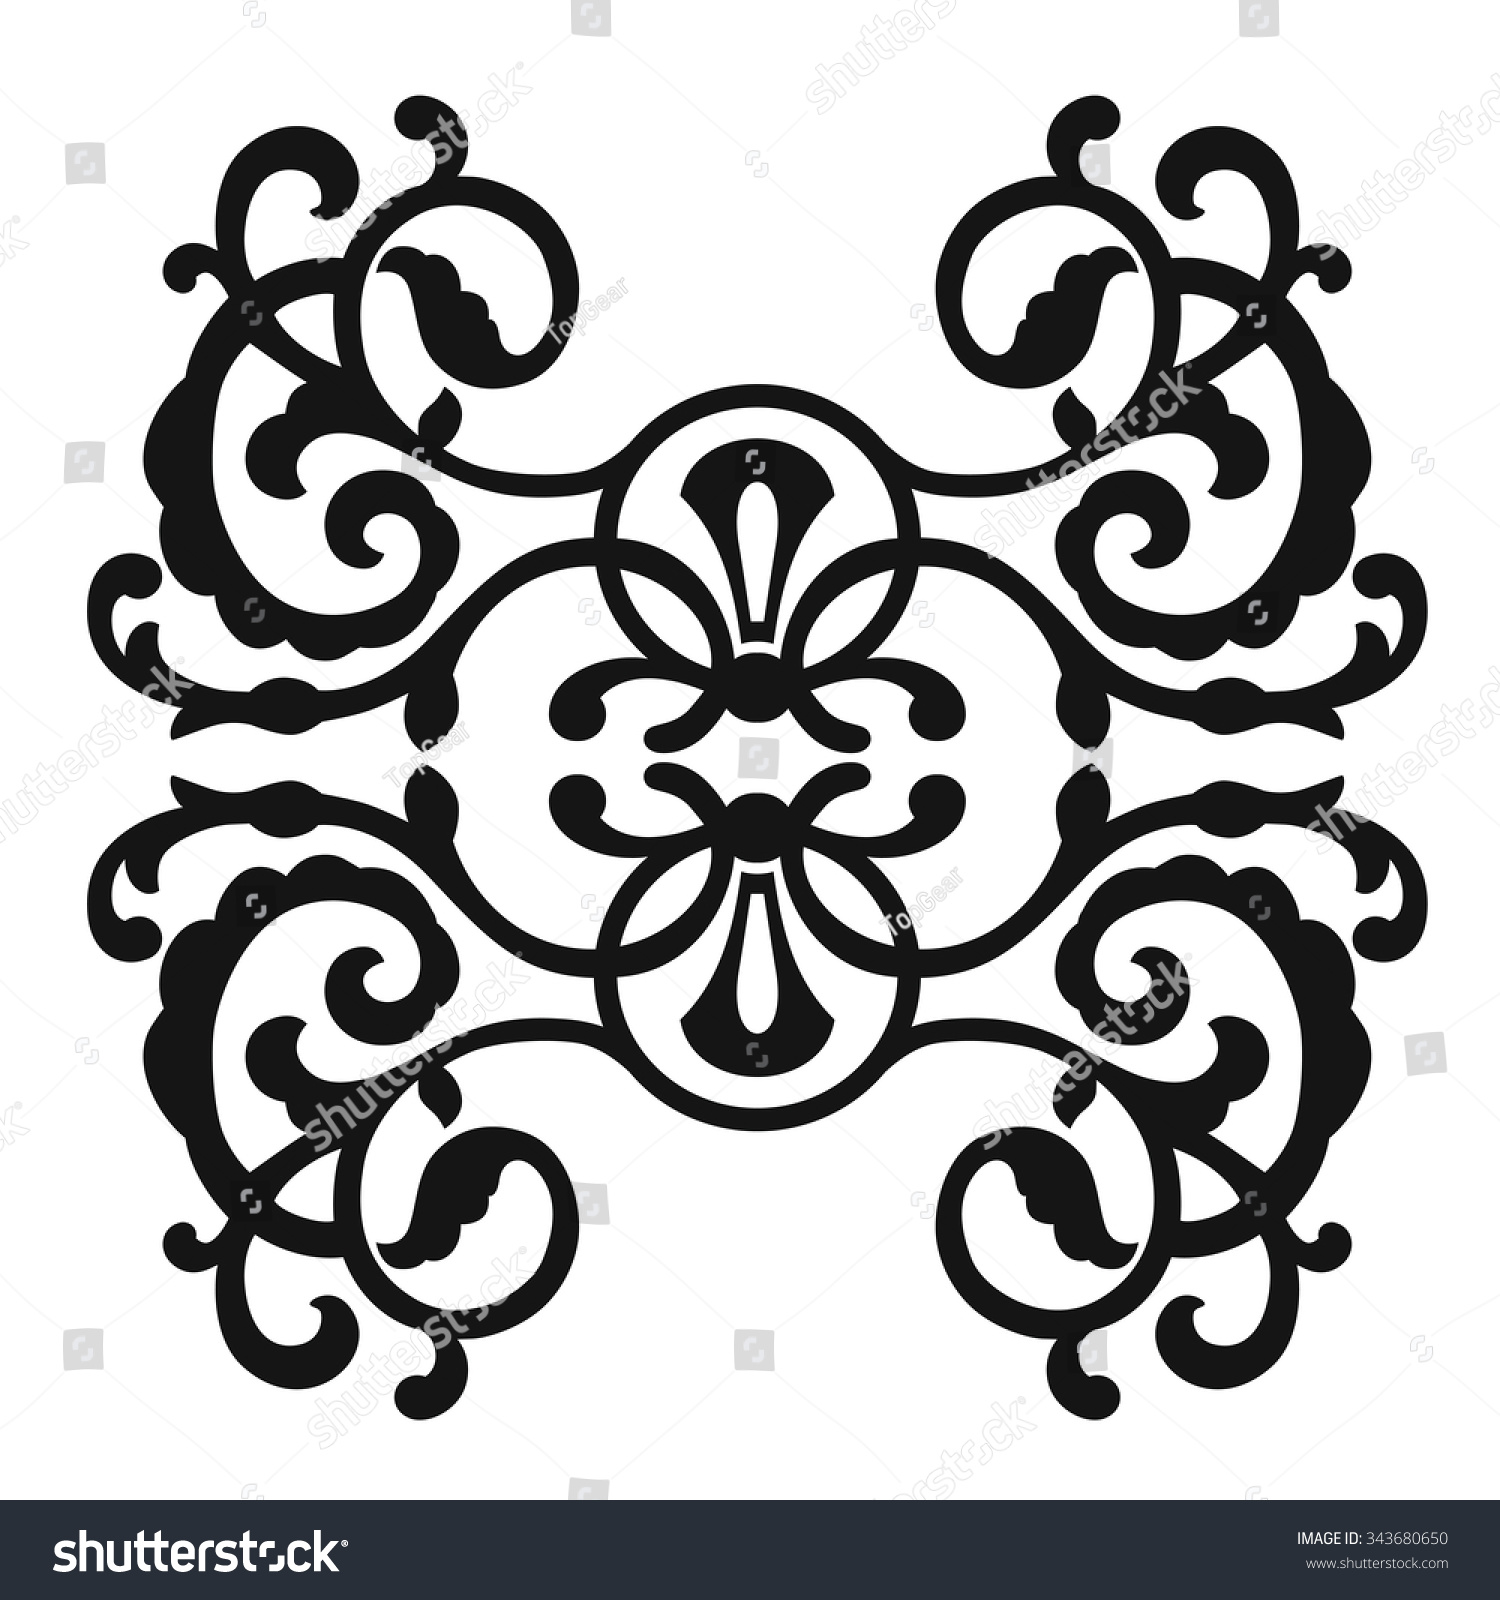 Antique Scroll Patterns: Vintage Baroque Frame Scroll Ornament Engraving Stock